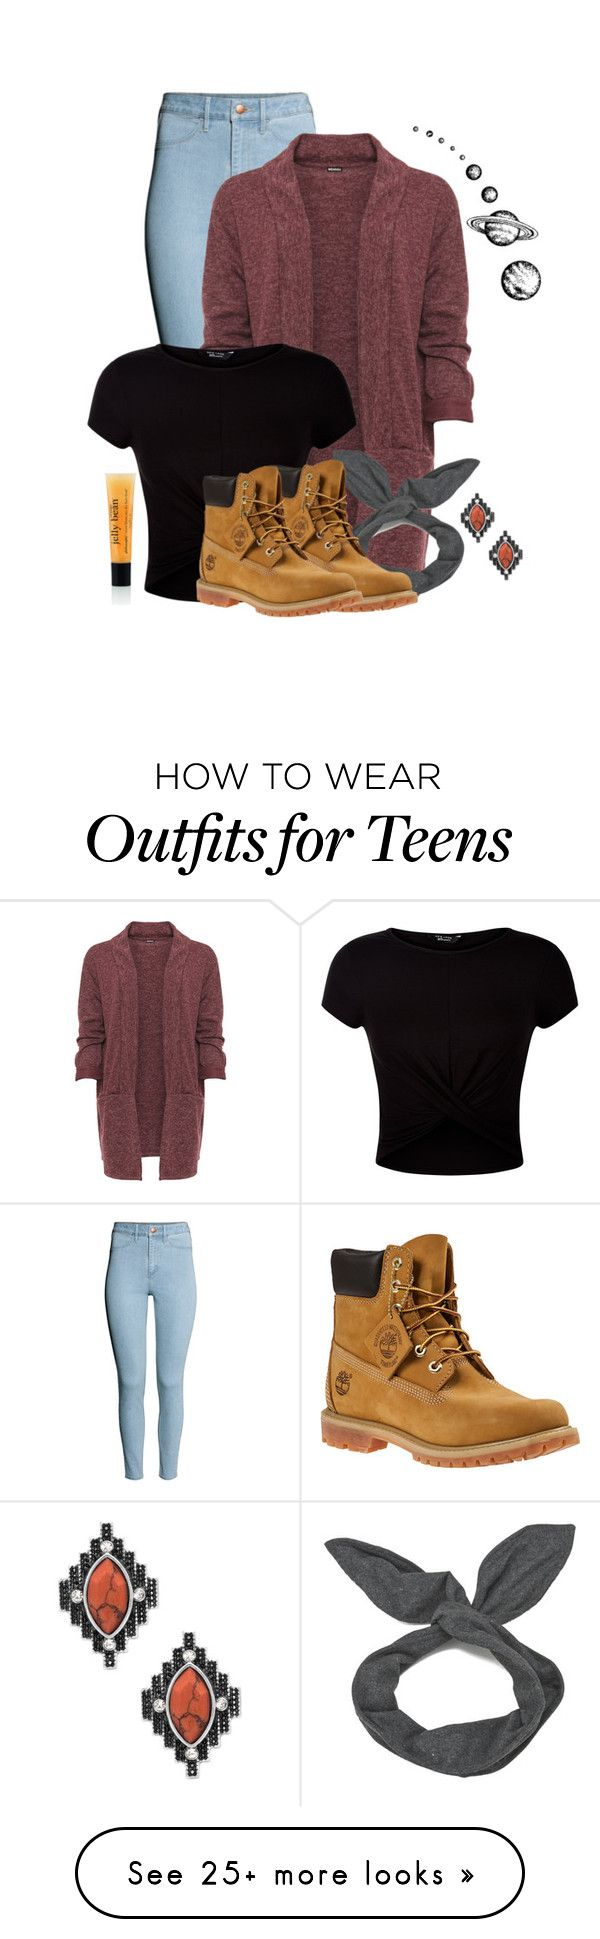 """o yikes school has started for me"" by sensitive-pajaro on Polyvore featuring H&M, WearAll, New Look, Cheap Monday, Timberland, Steve Madden and plus size clothing"